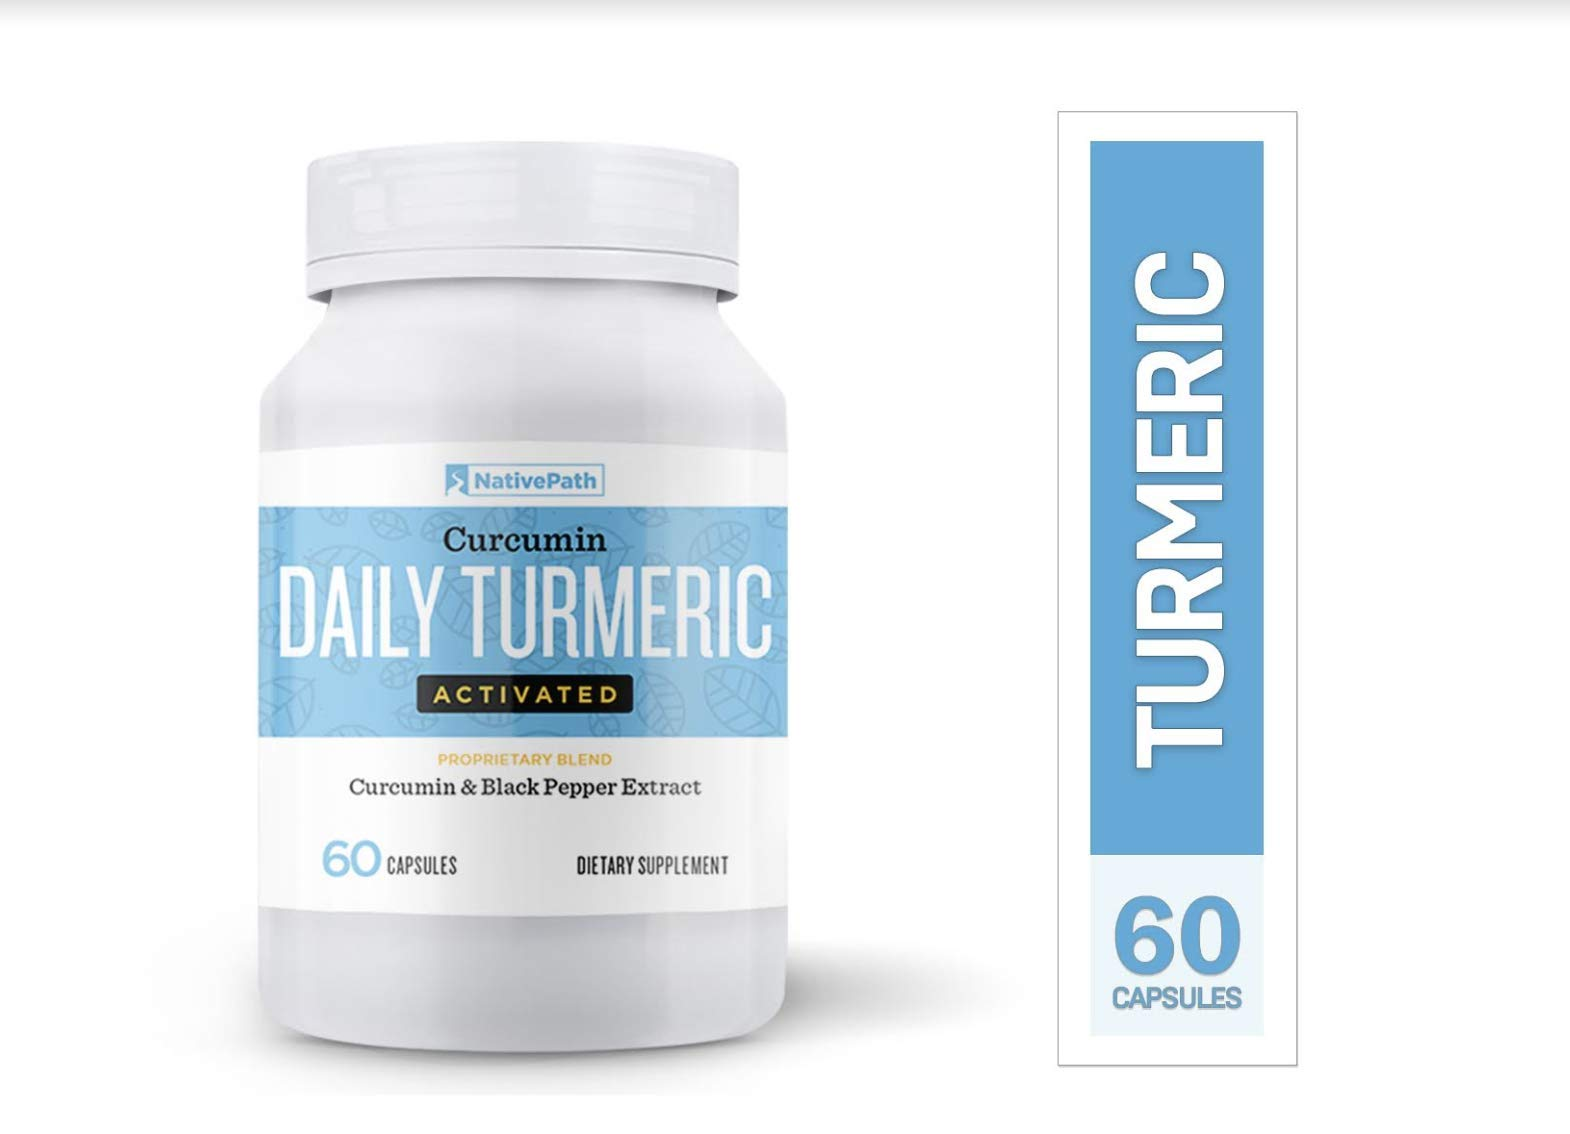 NativePath Daily Turmeric Activated Curcumin & Black Pepper Extract, Anti-Inflammatory Capsules, Provides Joint Relief and Supports Your Immune System, Mood, Memory (3)